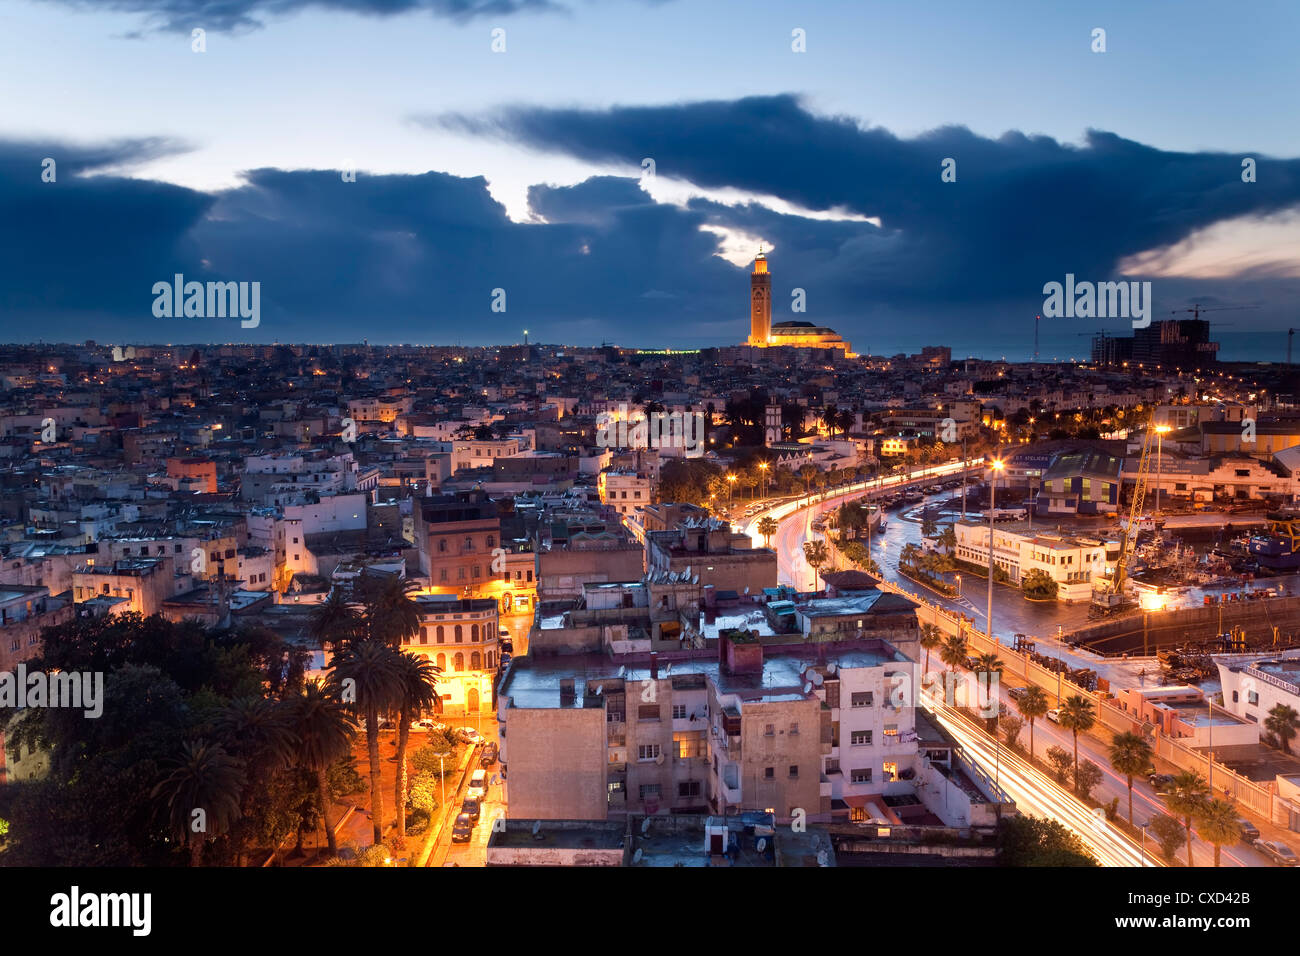 View over city with the Hassan II Mosque, the third largest mosque in the world in the bakcground, Casablanca, Morocco - Stock Image